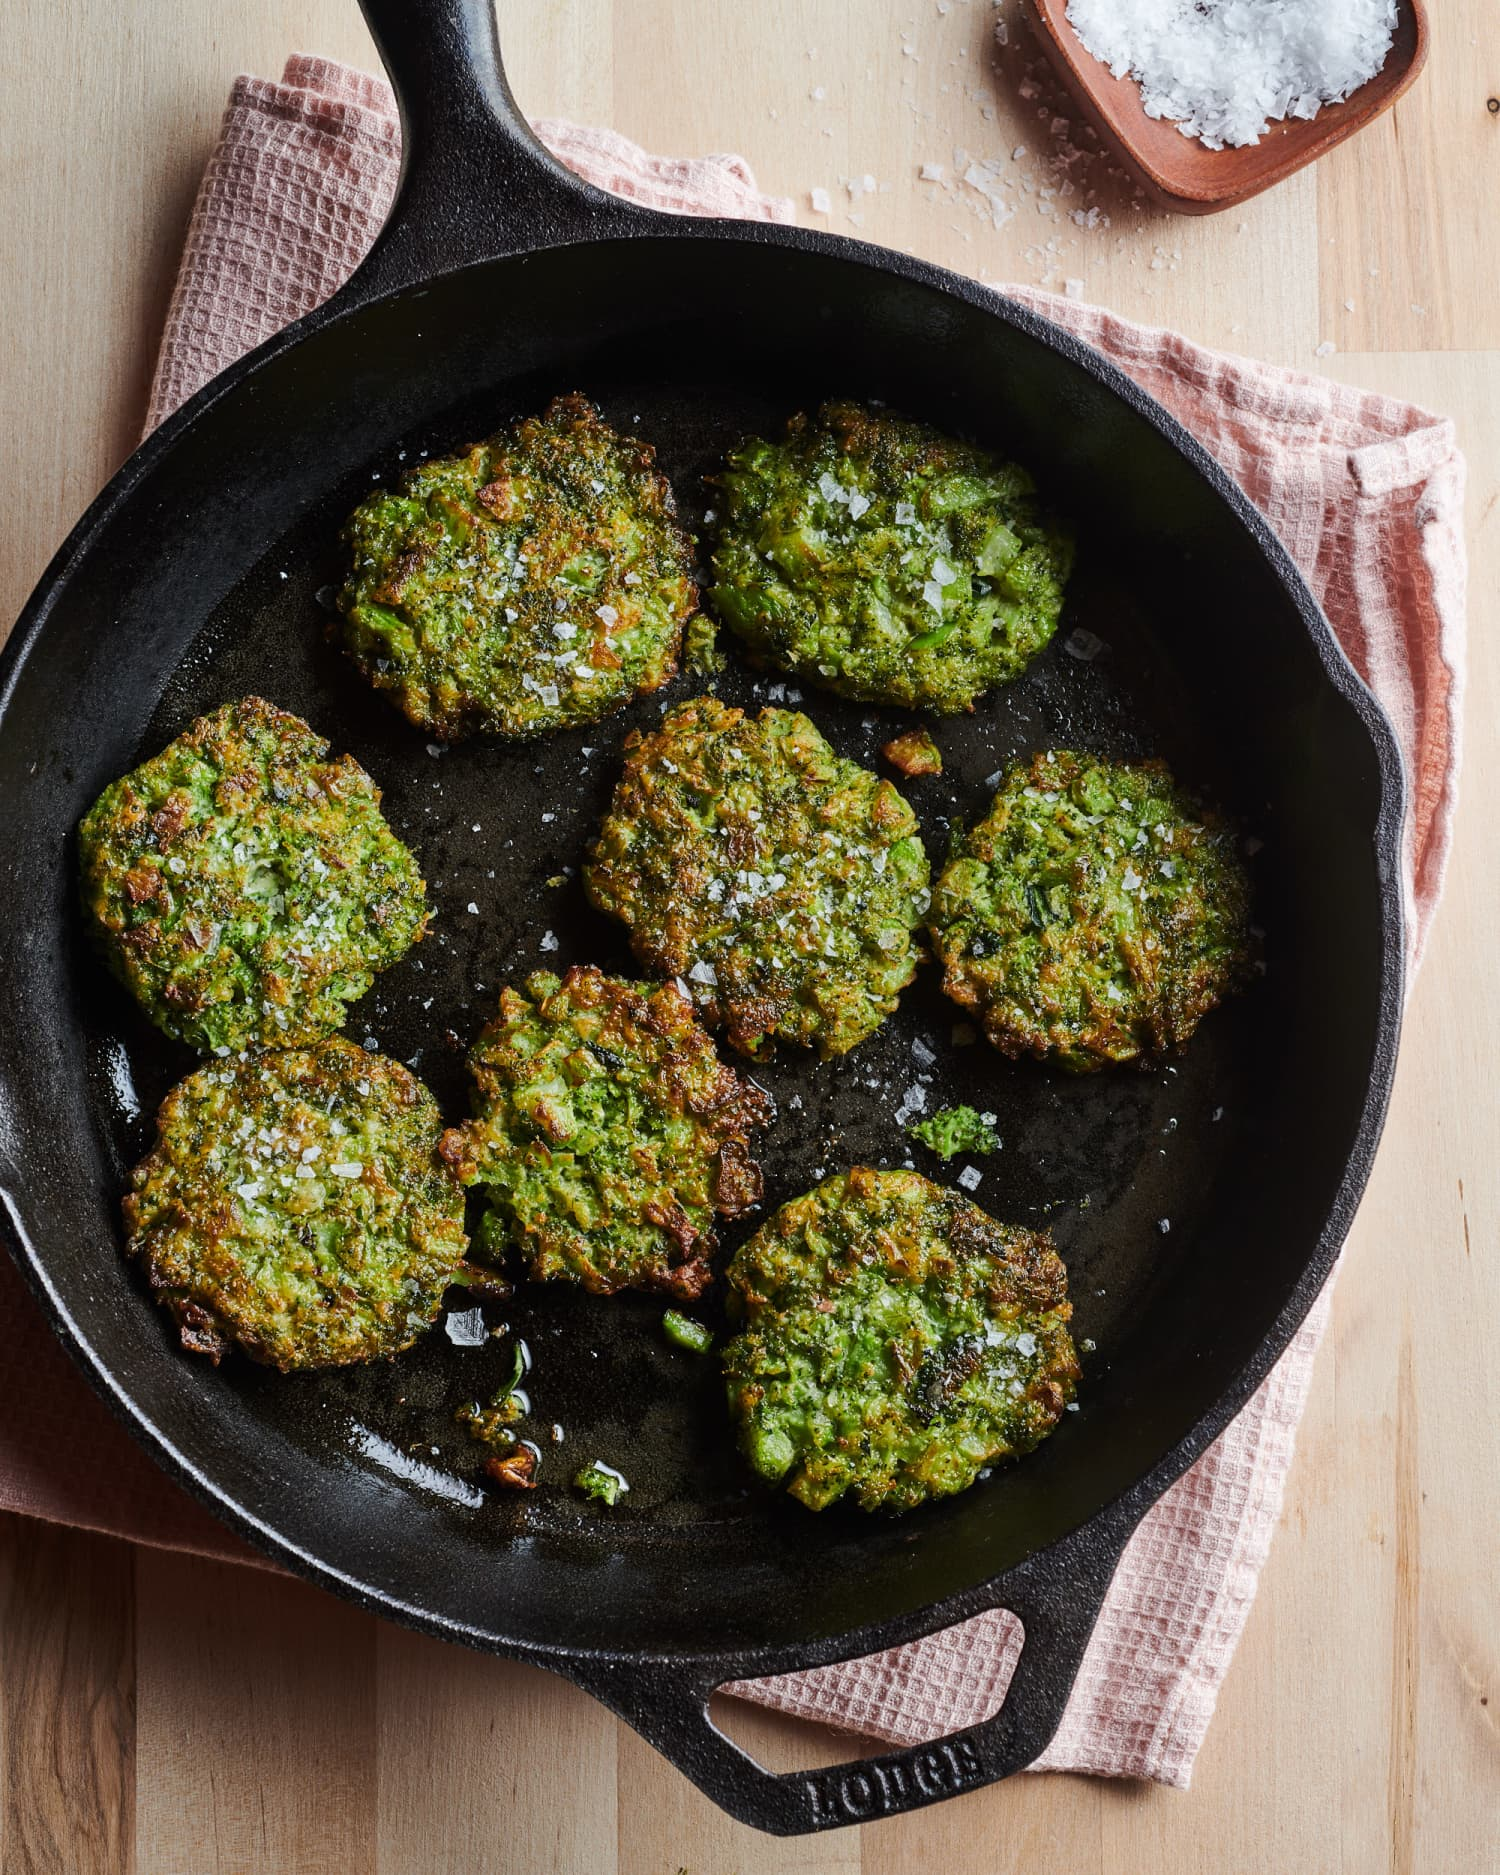 I Can't Stop Making These 2-Ingredient Broccoli Fritters